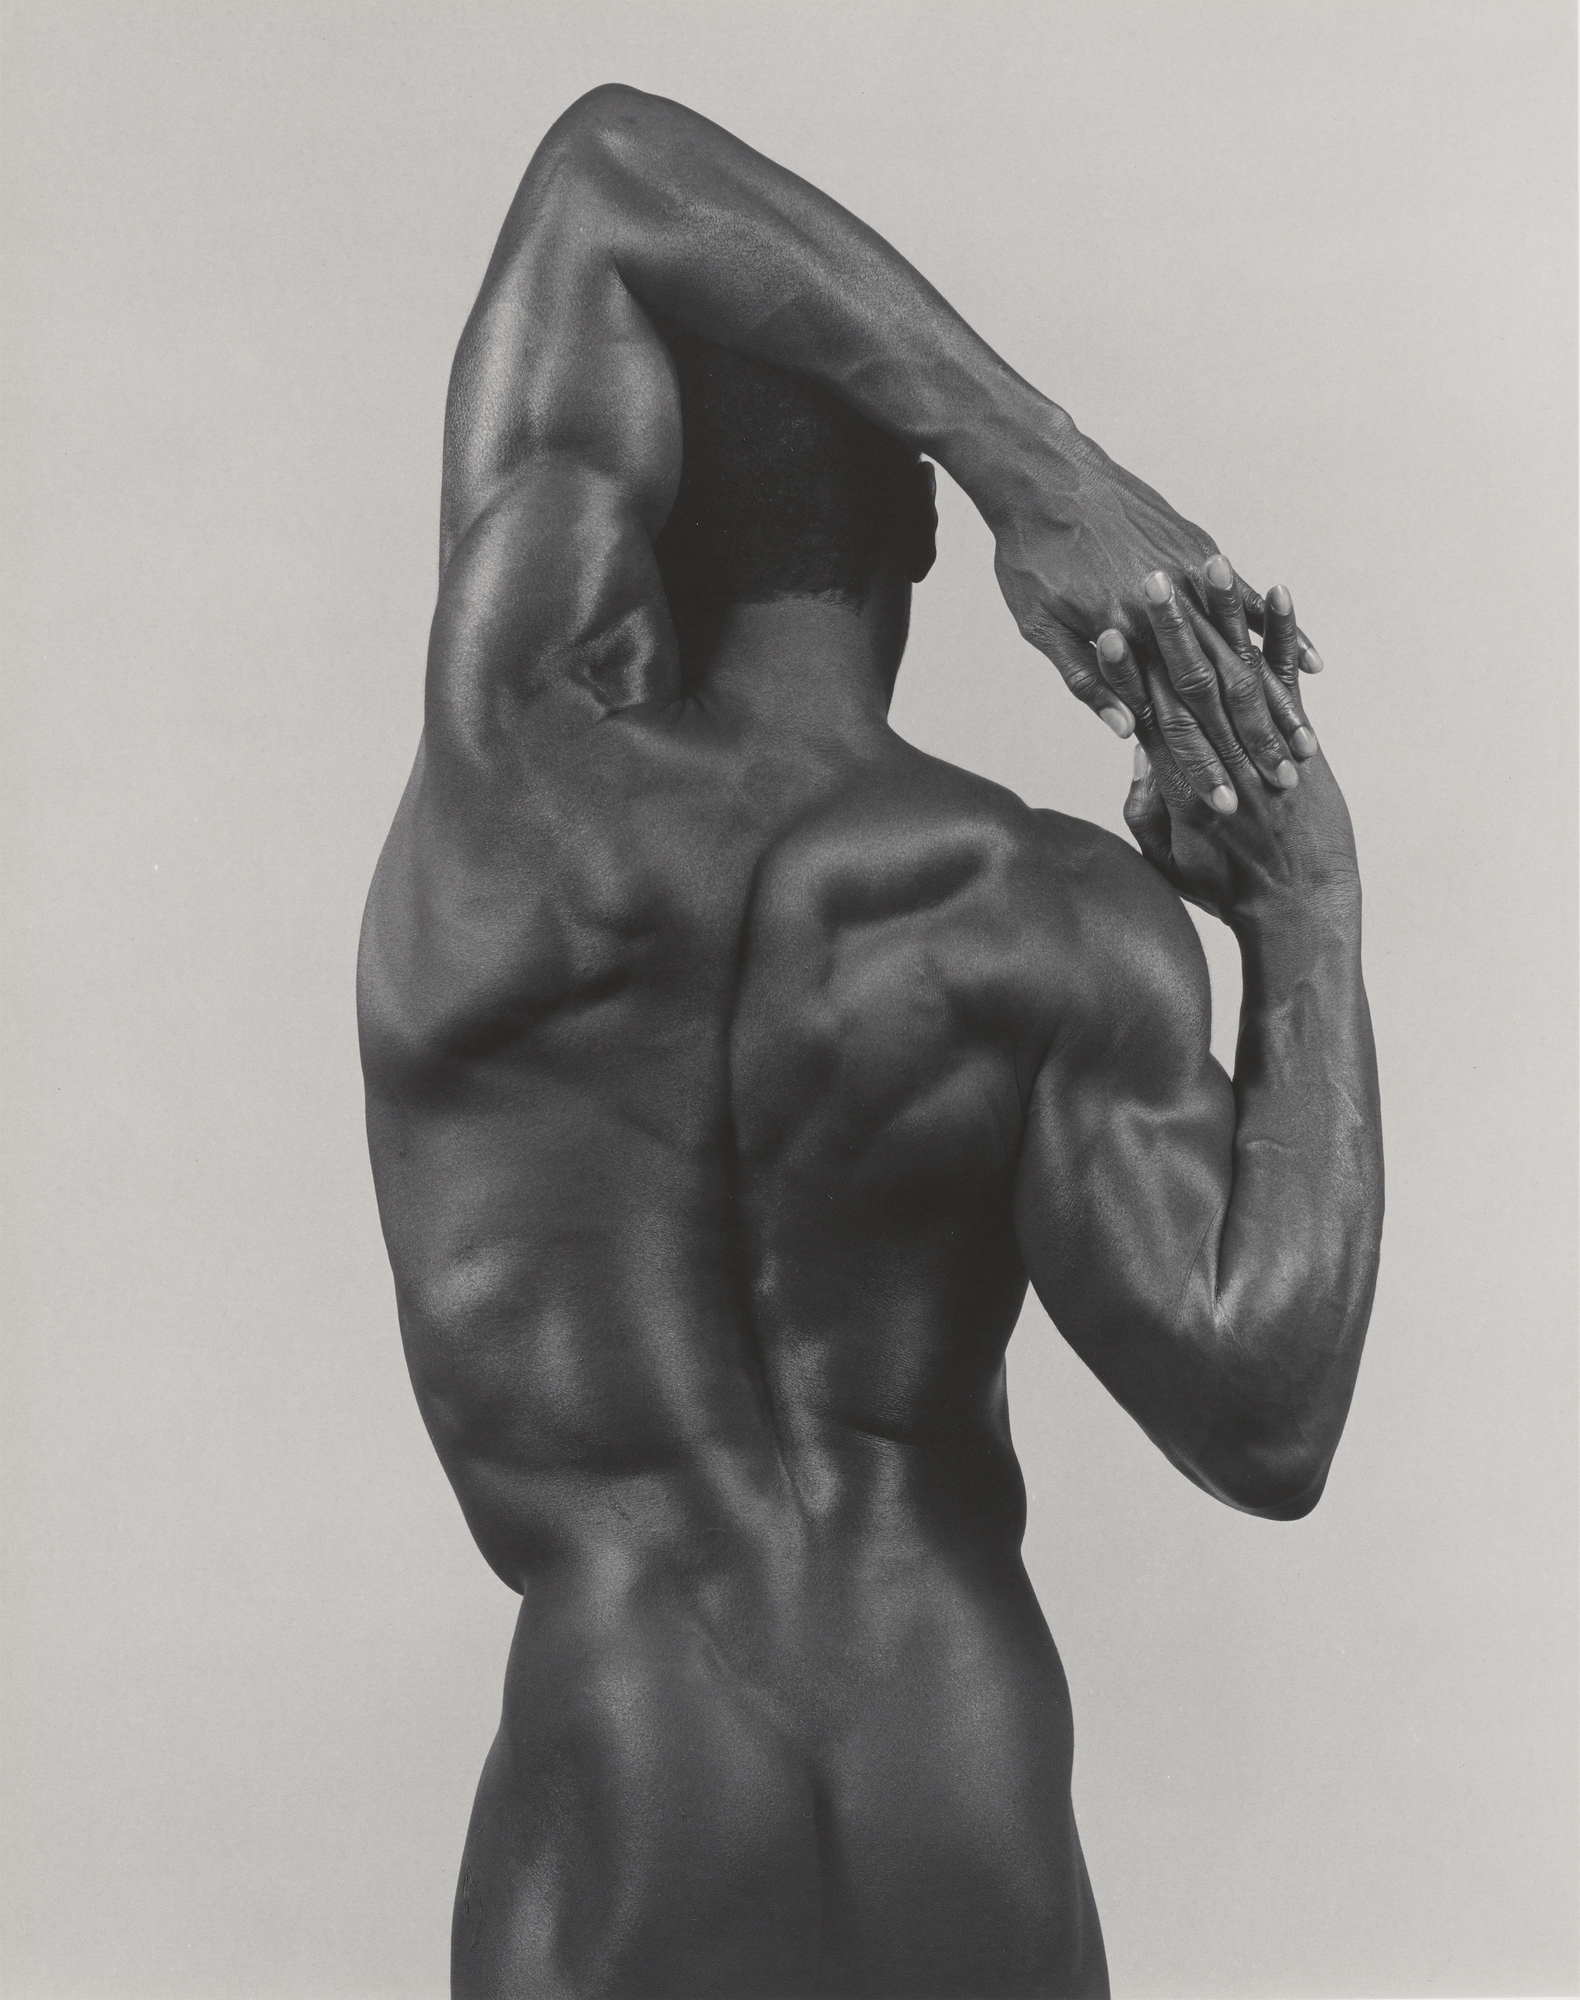 robert-mapplethorpe_derrick-cross